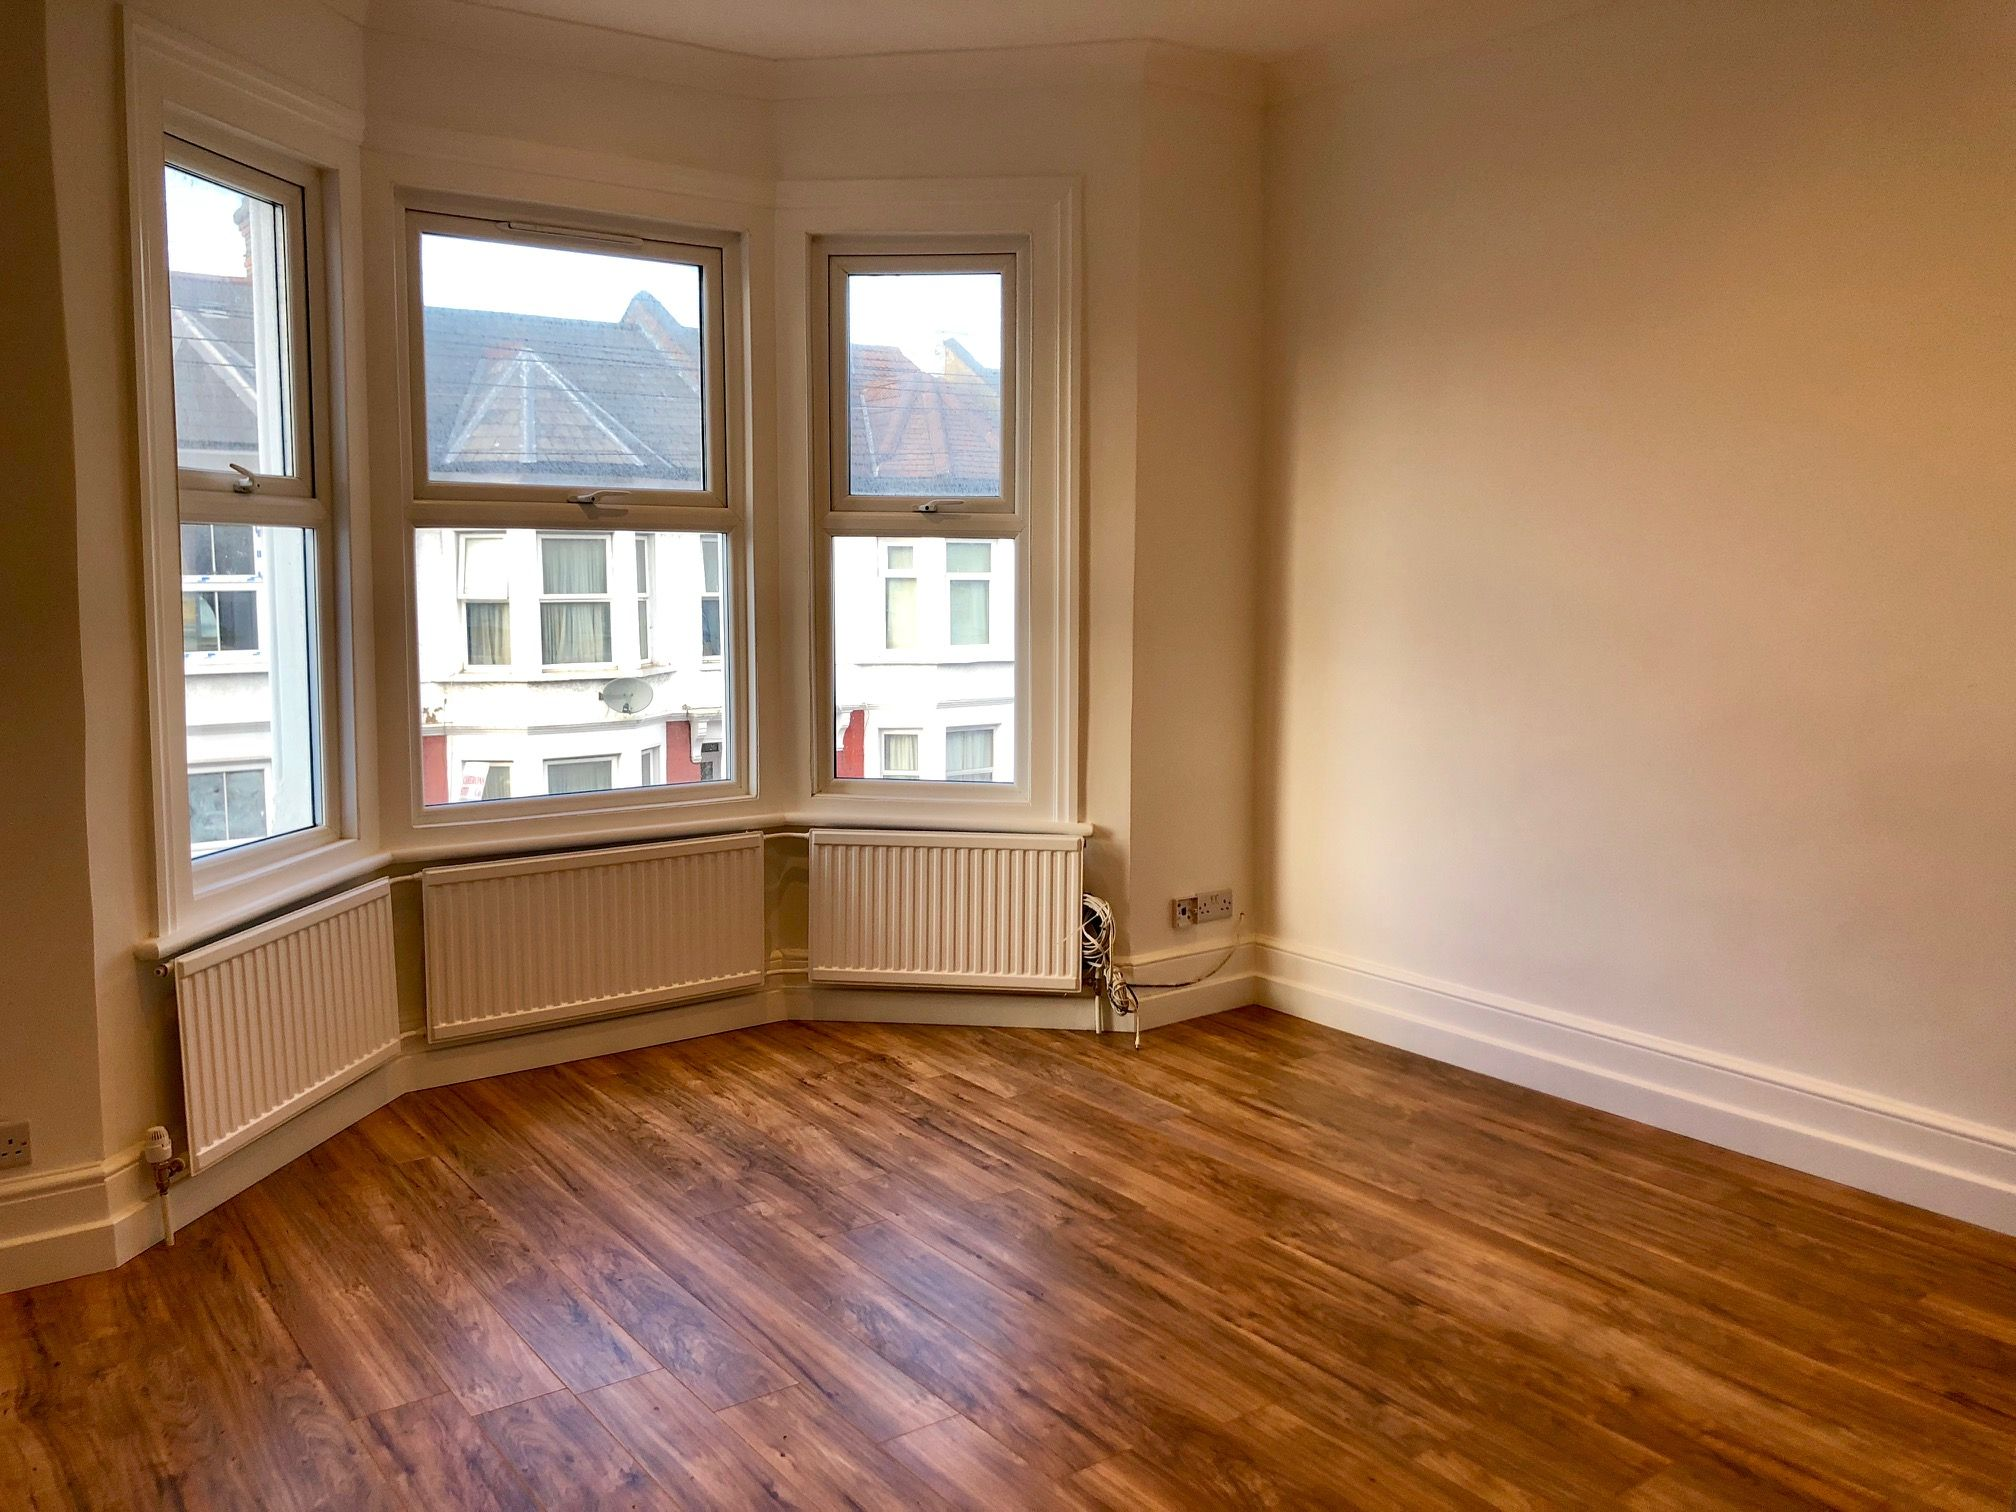 3 bedroom flat flat/apartment To Let in London - OPEN PLAN LIVING